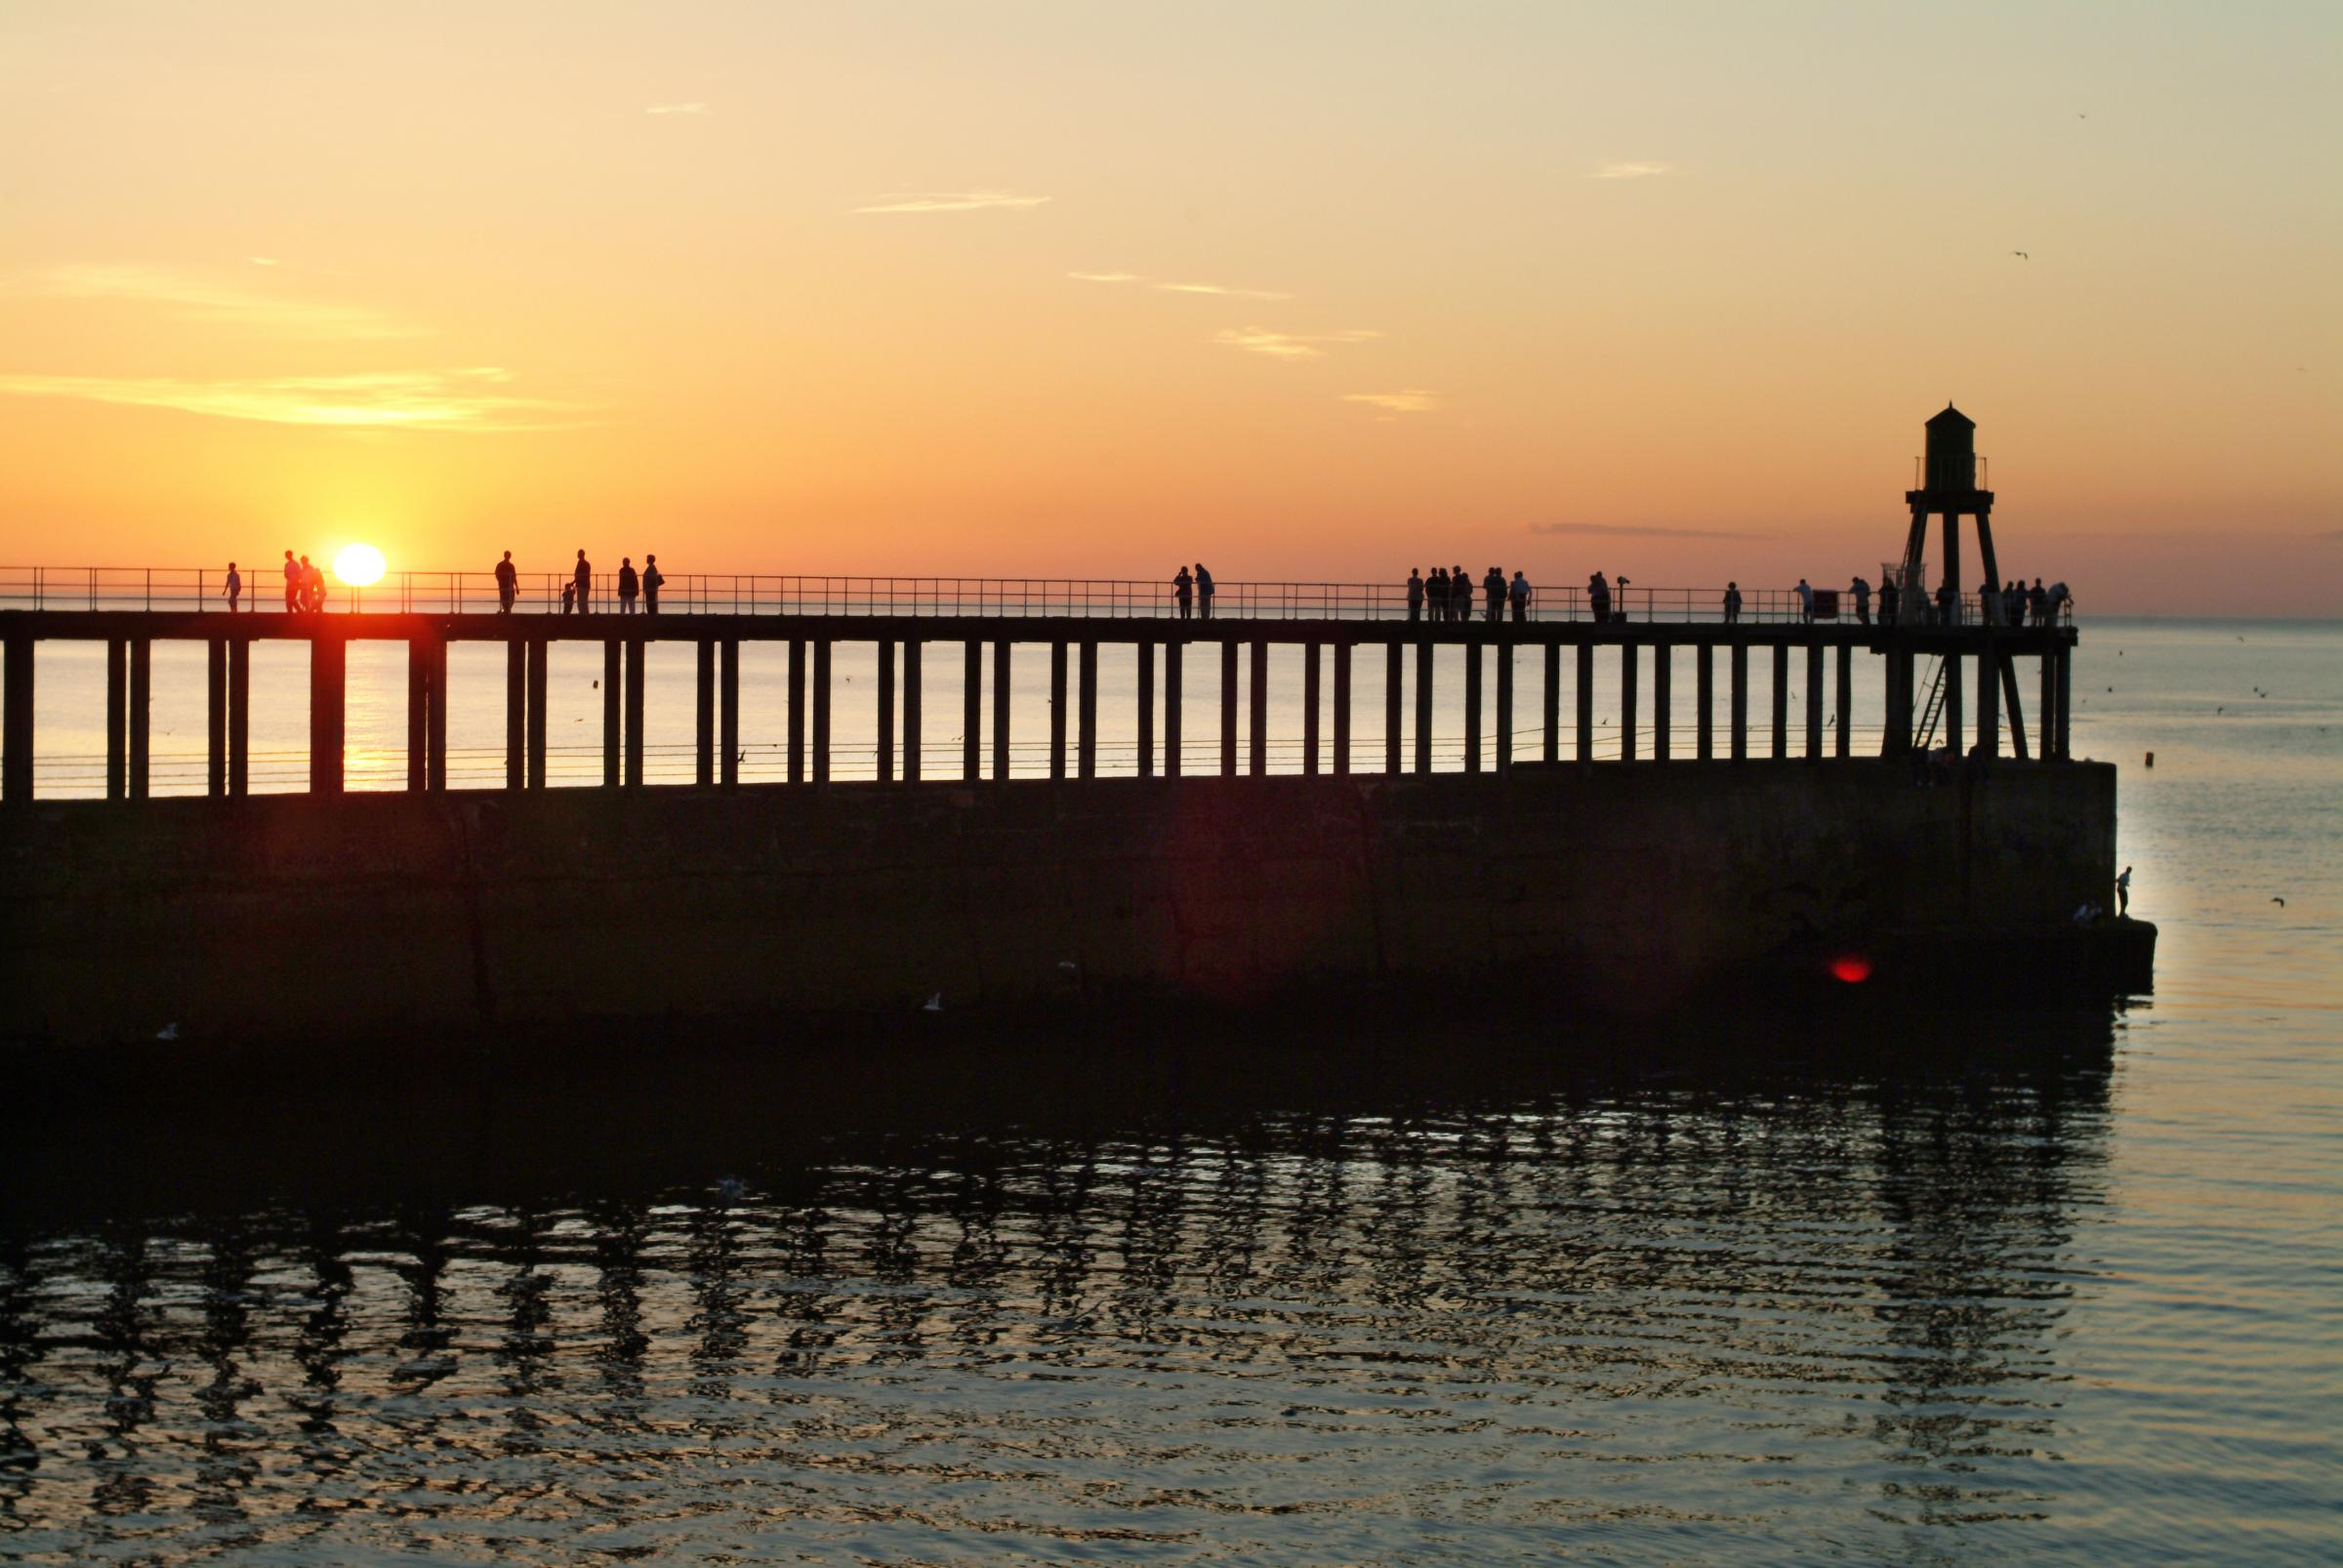 PROJECT: Whitby's piers are to undergo a major refurbishment